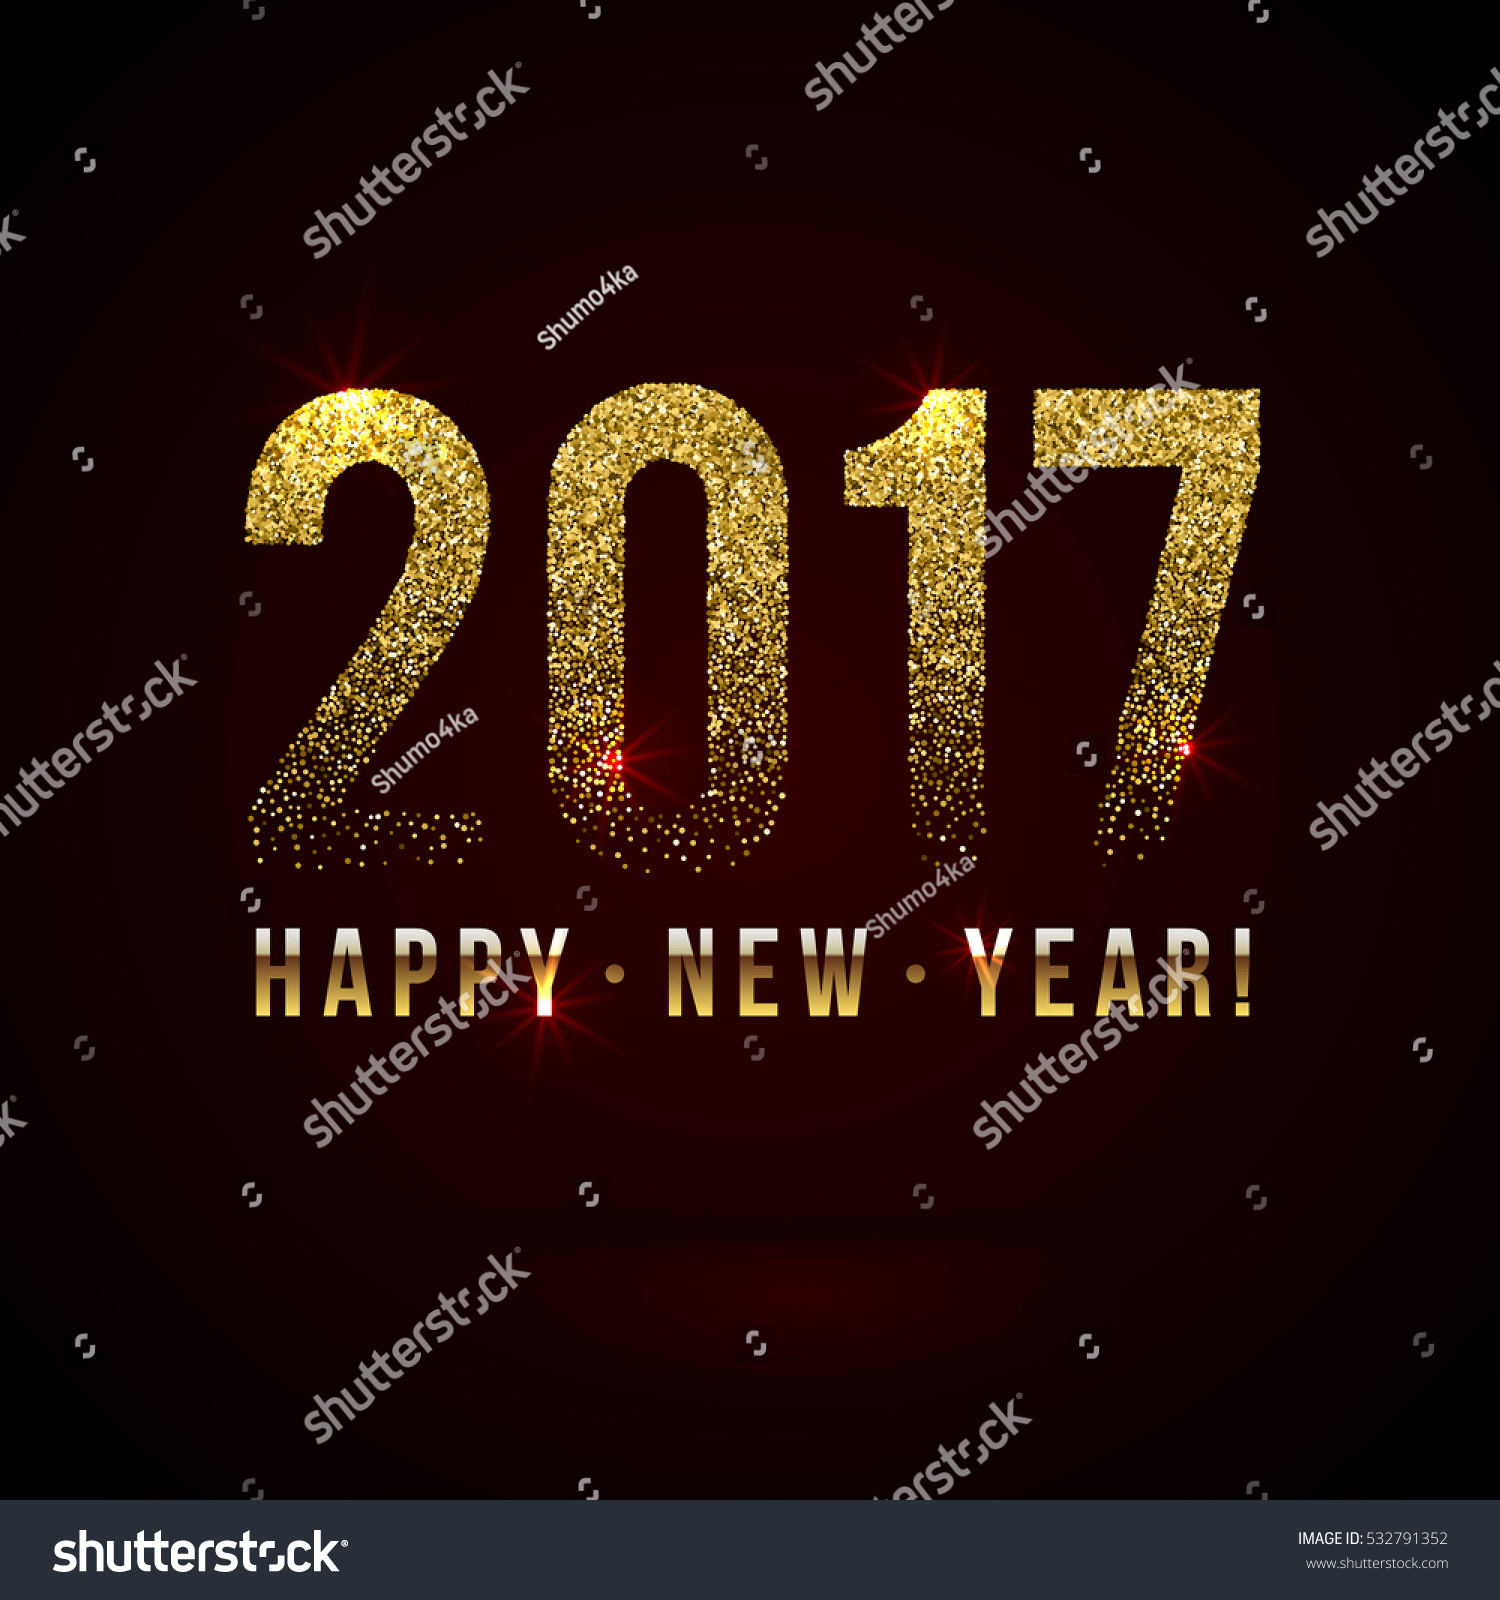 happy new year 2017 shiny greeting card made of glitter particles party poster banner